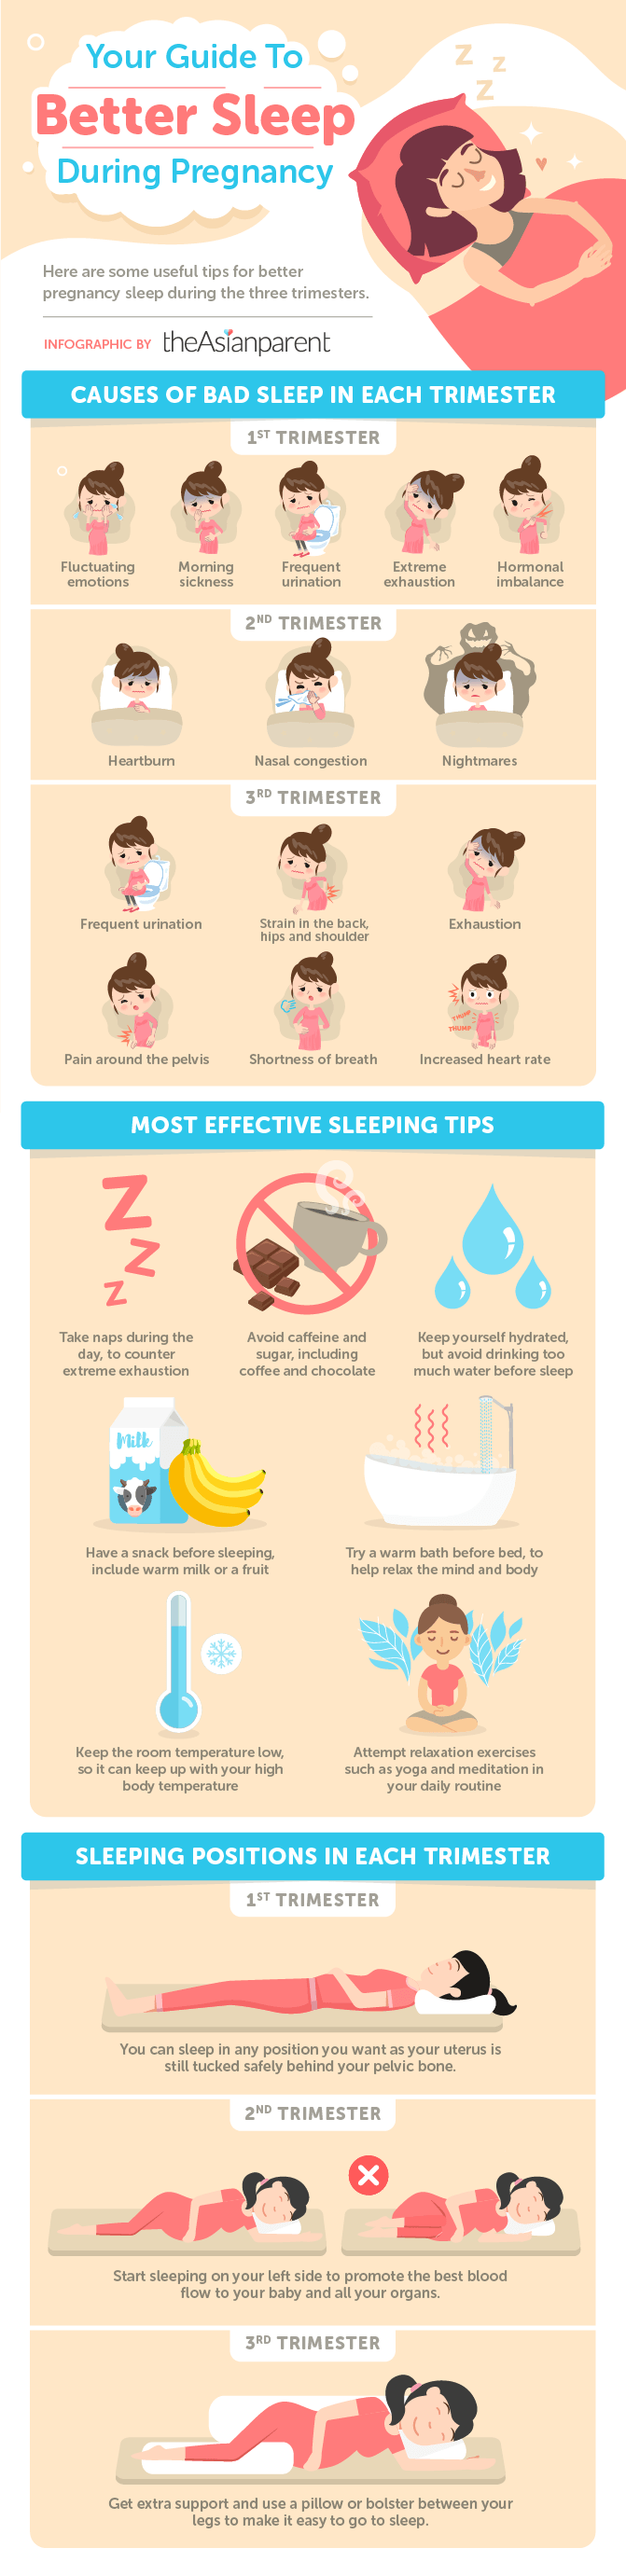 sleep better during your pregnancy